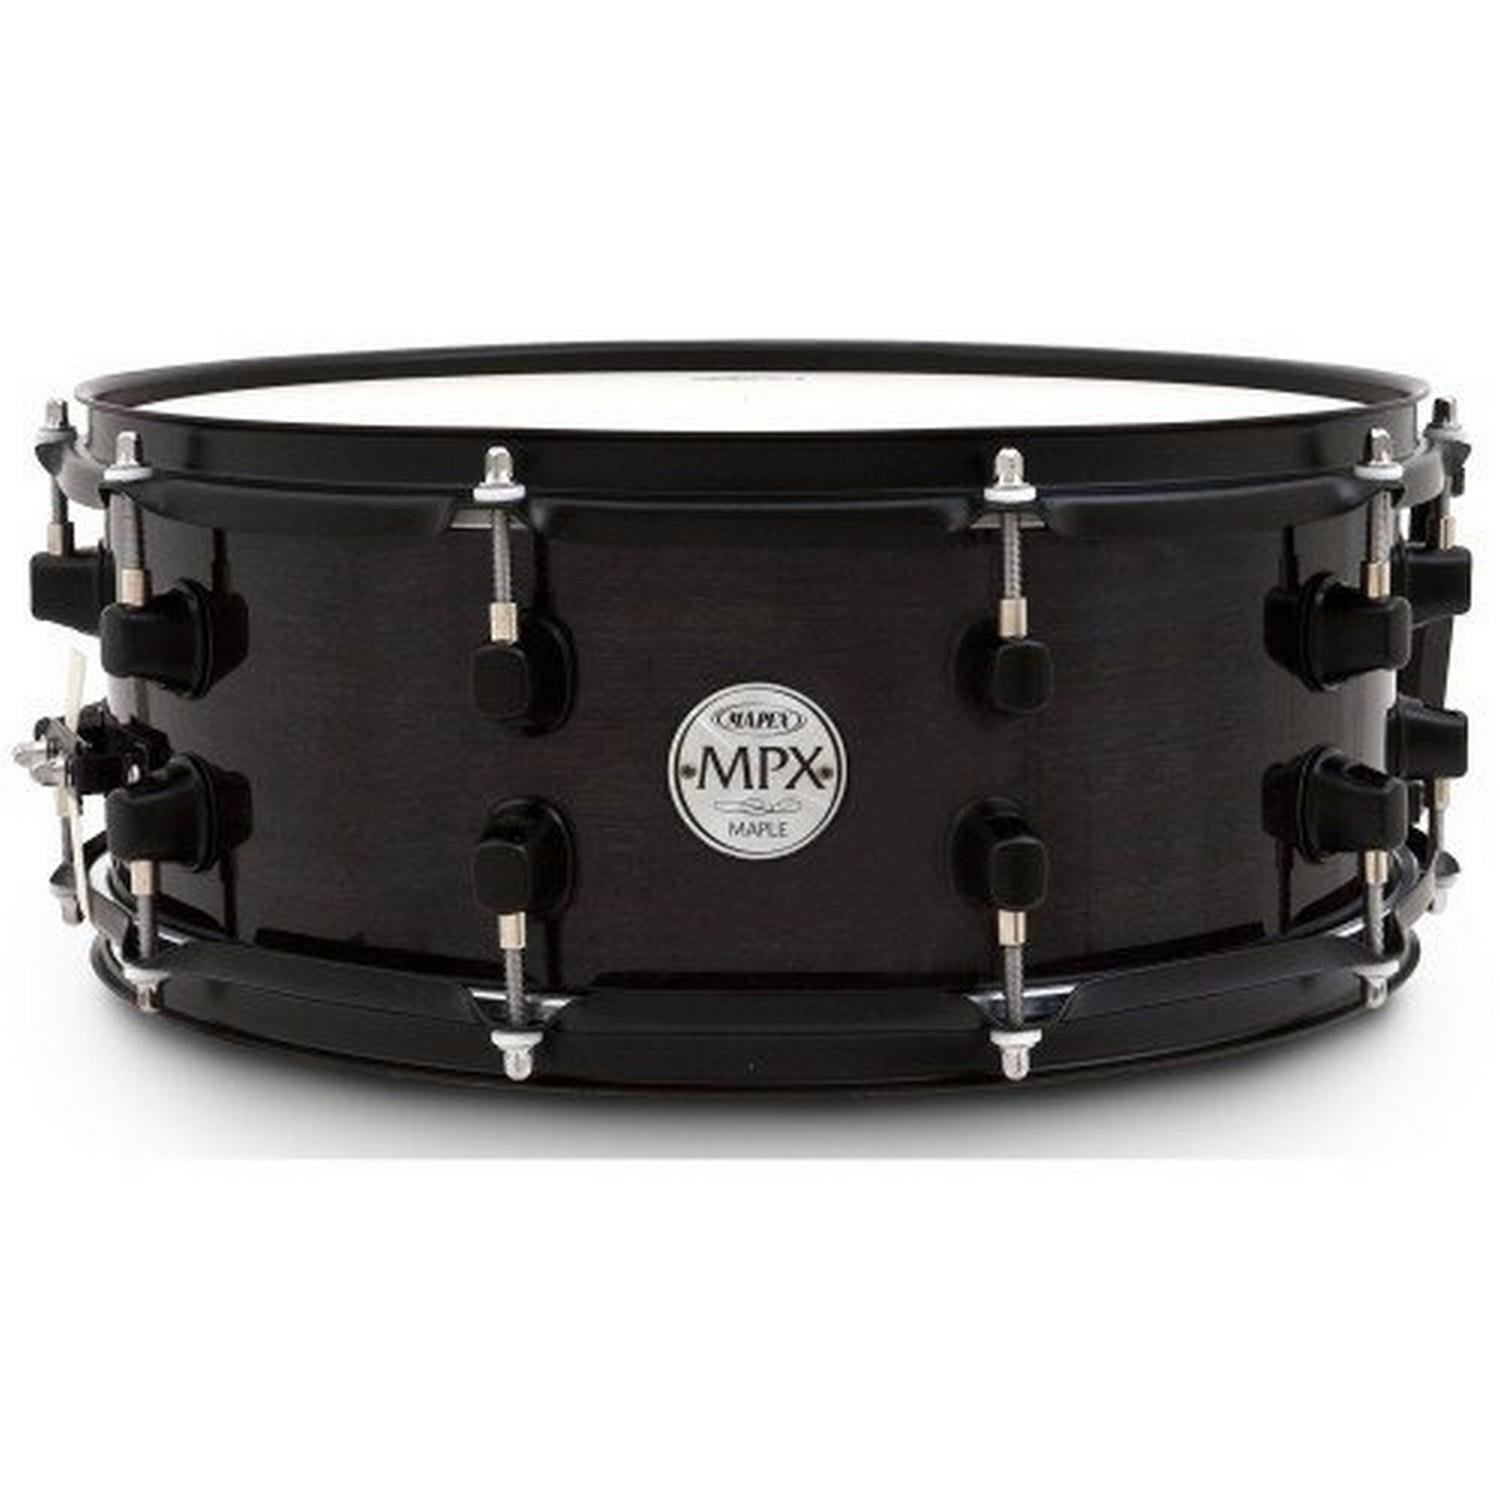 Mapex MPX 13 inch x 06 inch all birch snare drum in natural lacquer finish with chrome hardware